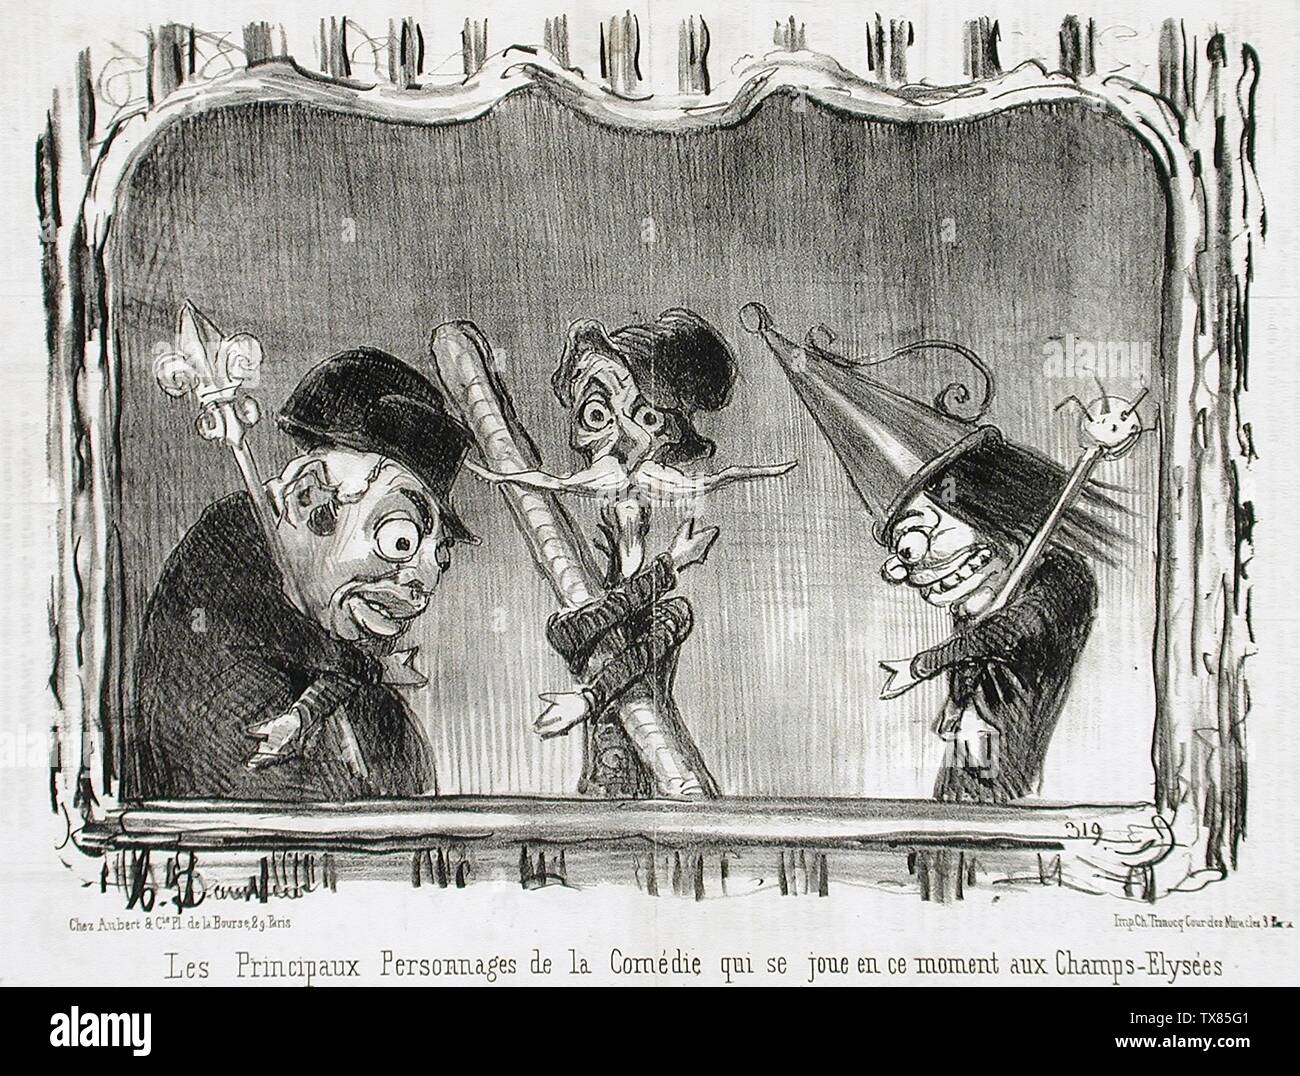 'Les principaux personnages de la Comédie...; English:  France, 1851 Series: Actualités Periodical: Le Charivari, 8 October 1851 Prints; lithographs Lithograph Sheet: 8 1/16 x 11 7/16 in. (20.48 x 29.05 cm) Gift of Mrs. Florence Victor from The David and Florence Victor Collection (M.91.82.249) Prints and Drawings; 1851date QS:P571,+1851-00-00T00:00:00Z/9; ' - Stock Image